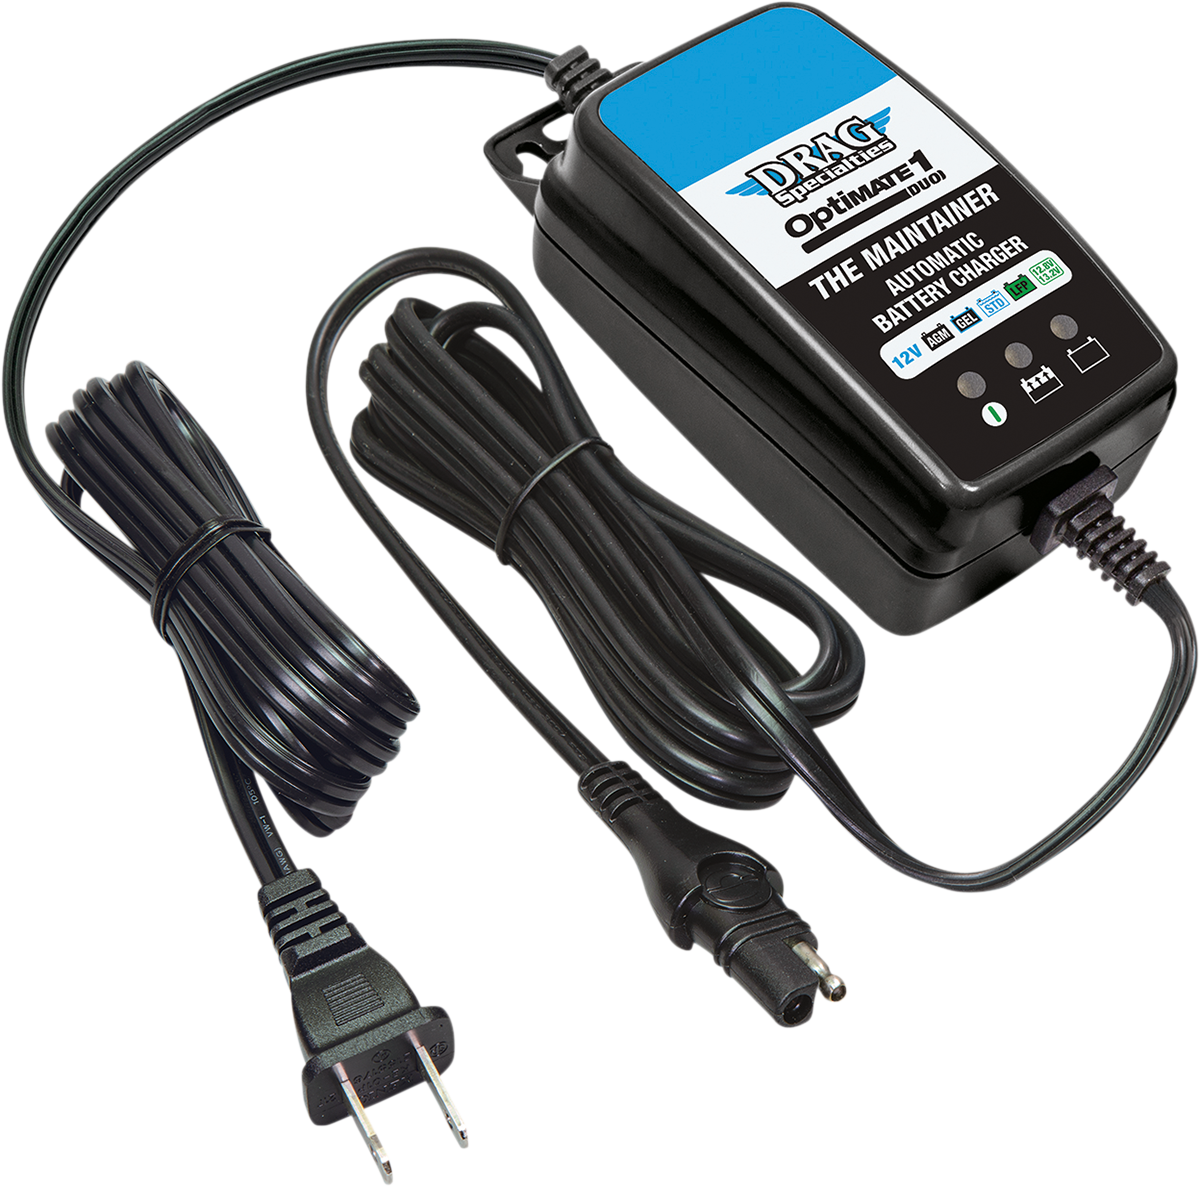 Drag Specialties OptiMate Duo 1 Motorcycle Battery Charger Maintainer for Harley